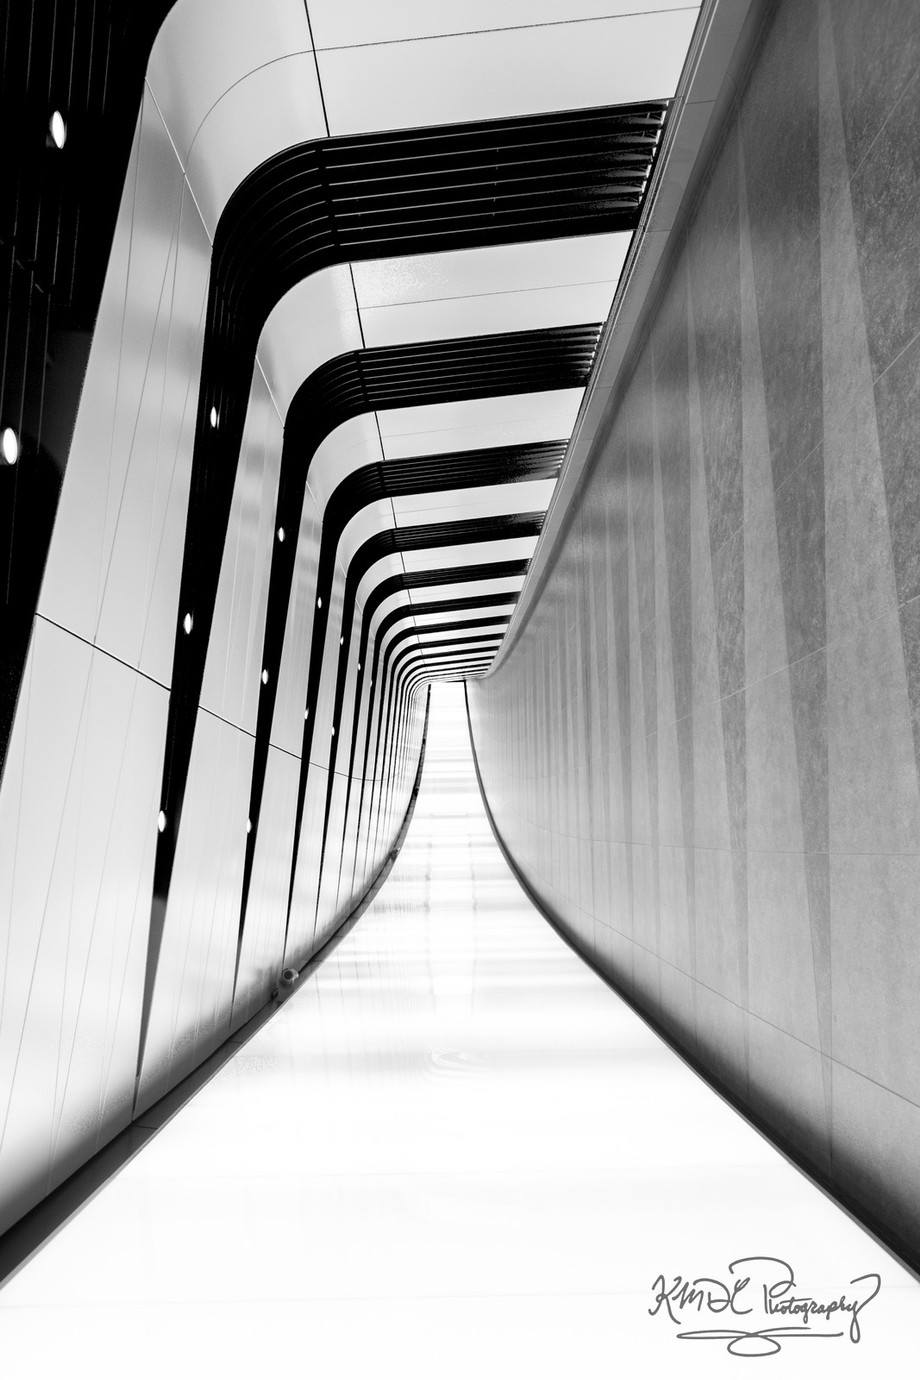 The Tunnel @ Kings Cross, London by KMDCphotography - Black And White Architecture Photo Contest